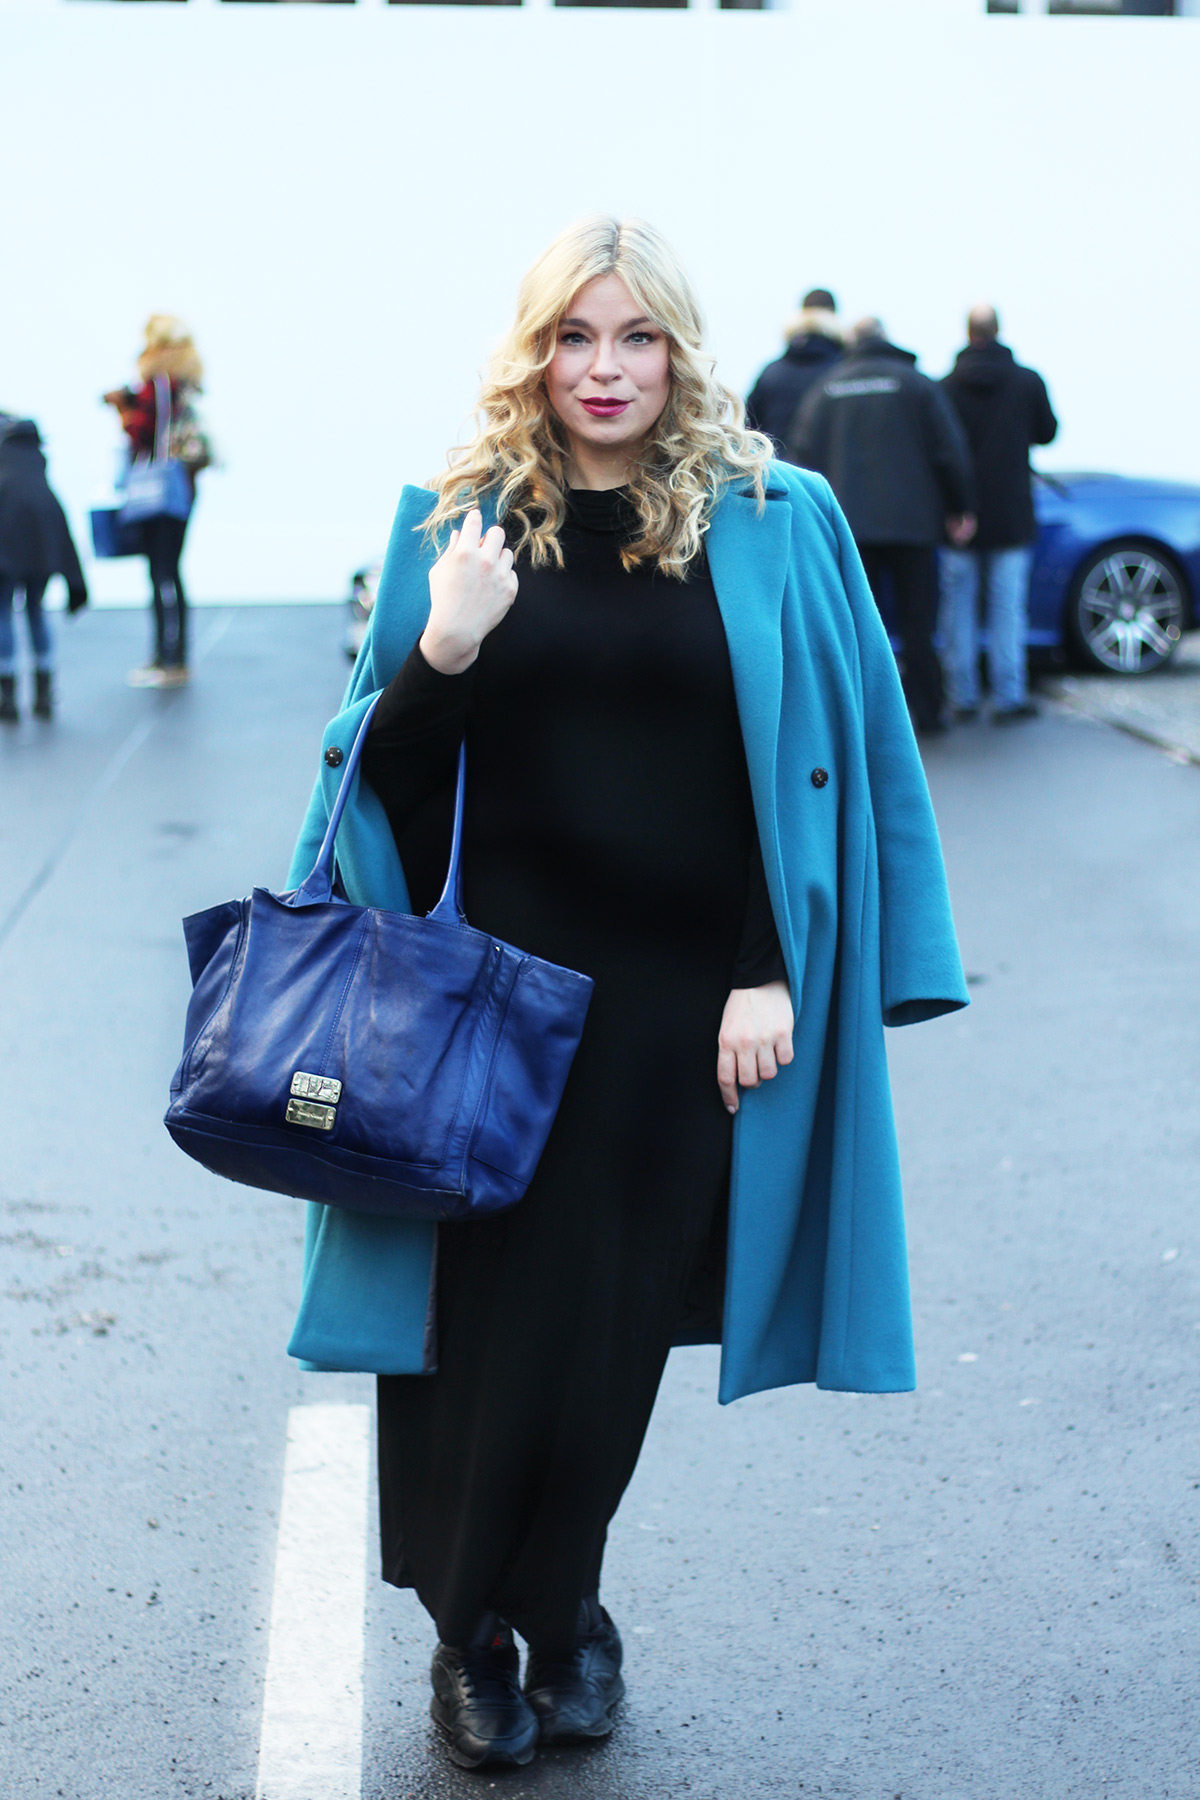 Fashion Week Trends-Megabambi-Plussizeblog-Fashionblog-Caterinapogorzelski